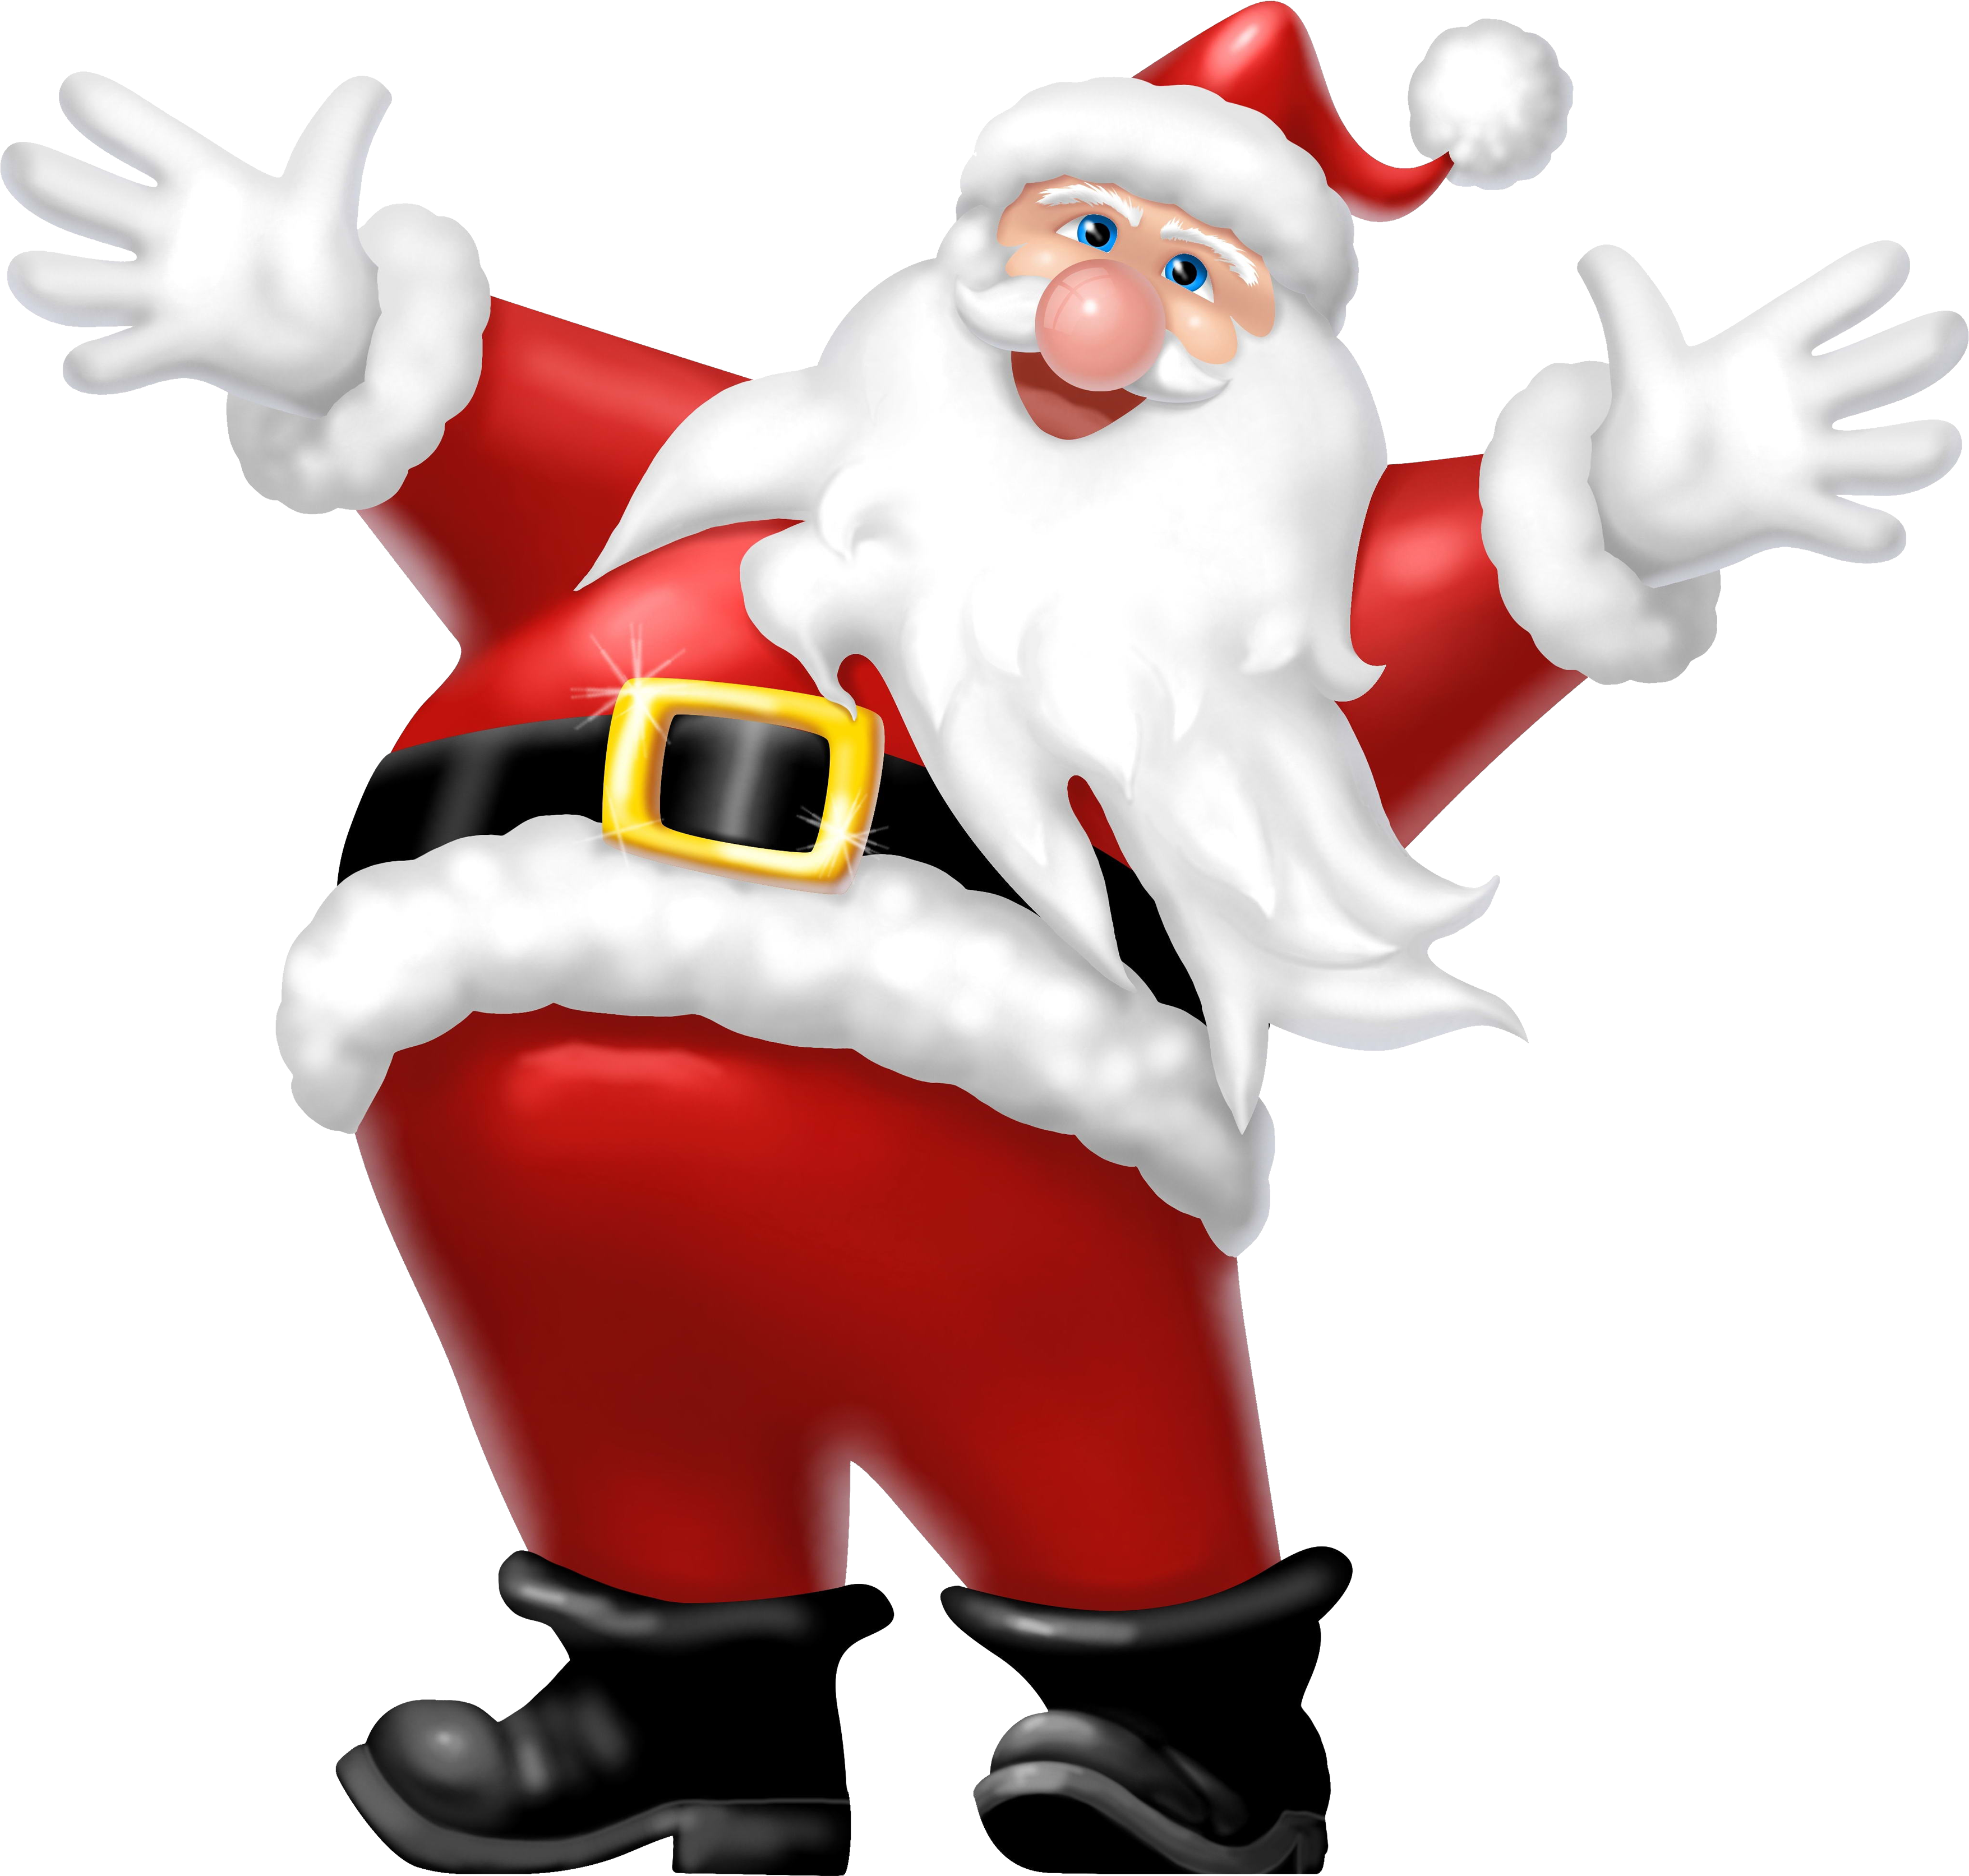 santa claus png image cliparts free download clipart free christmas